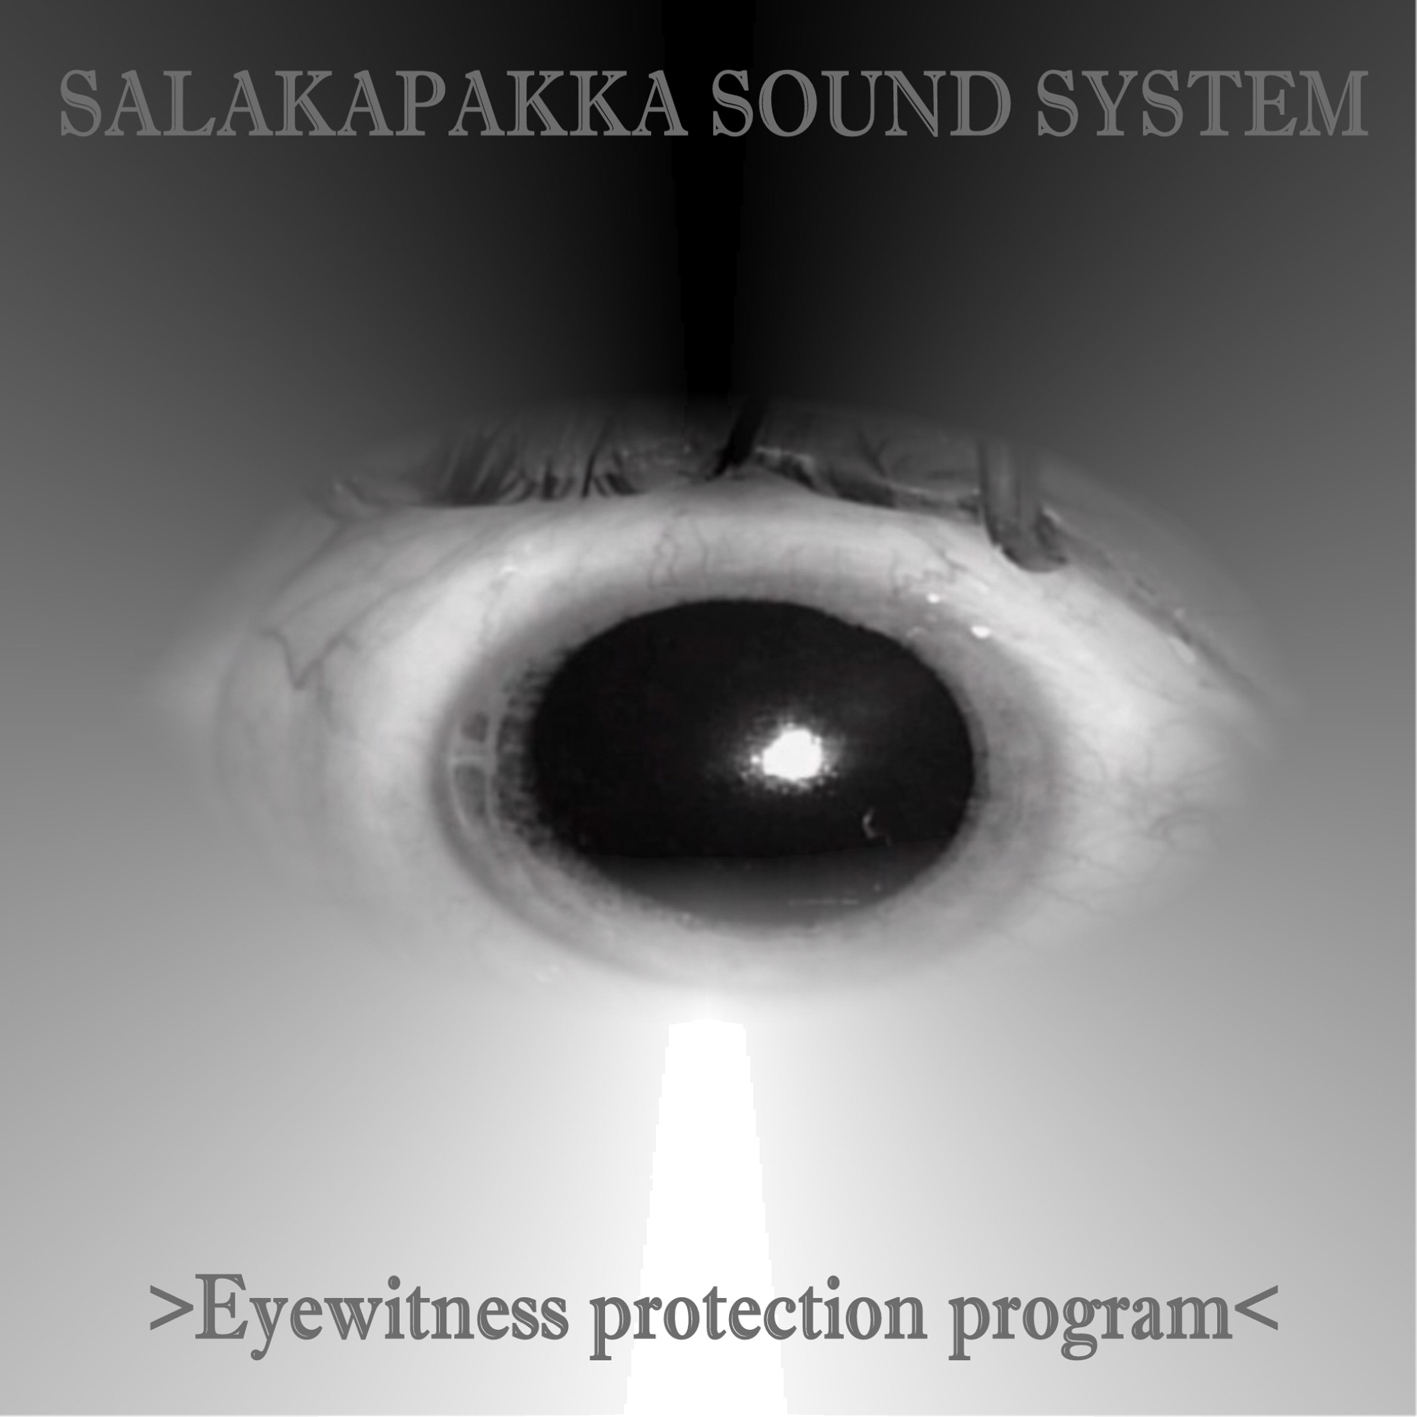 Ikuinen Kaamos 2011 Light2sound Ldr Synth Make Head Over At Spettro To Get Brand New Salakapakka Sound System Web Album Eyewitness Protection Program Collection Of Tracks Made In 2010 Which Did Not